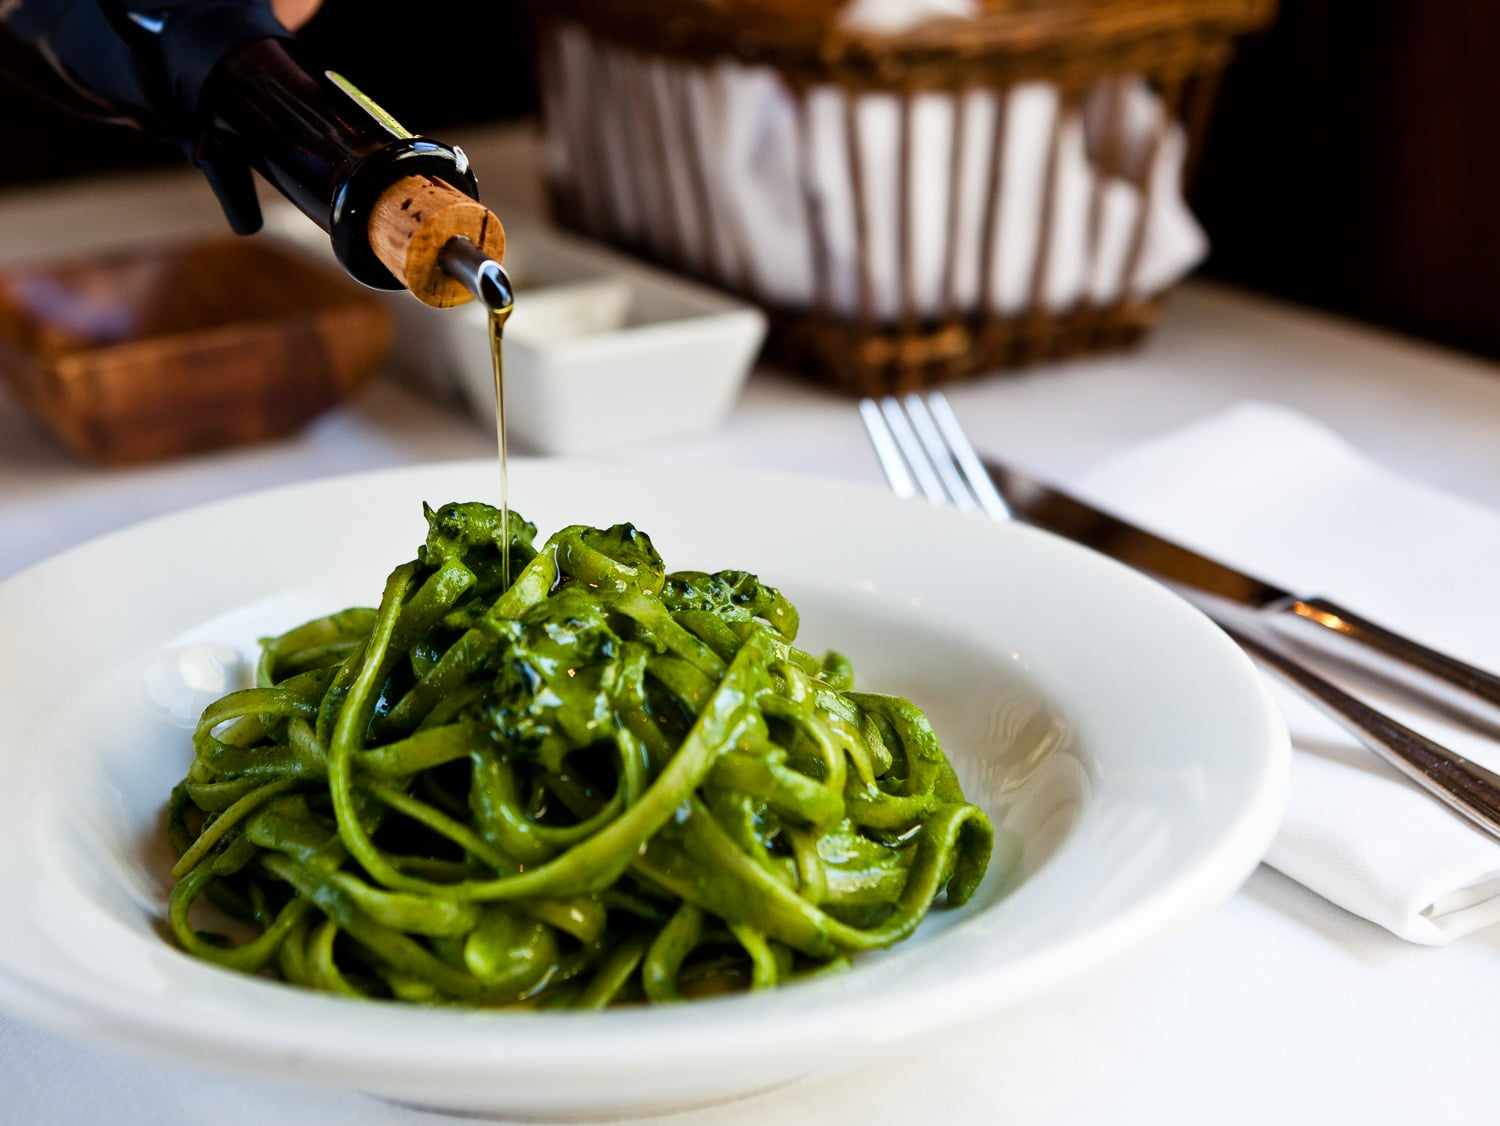 Olive oil is drizzled over a tangle of linguine coated in bright green sauce in a white bowl at a set table.